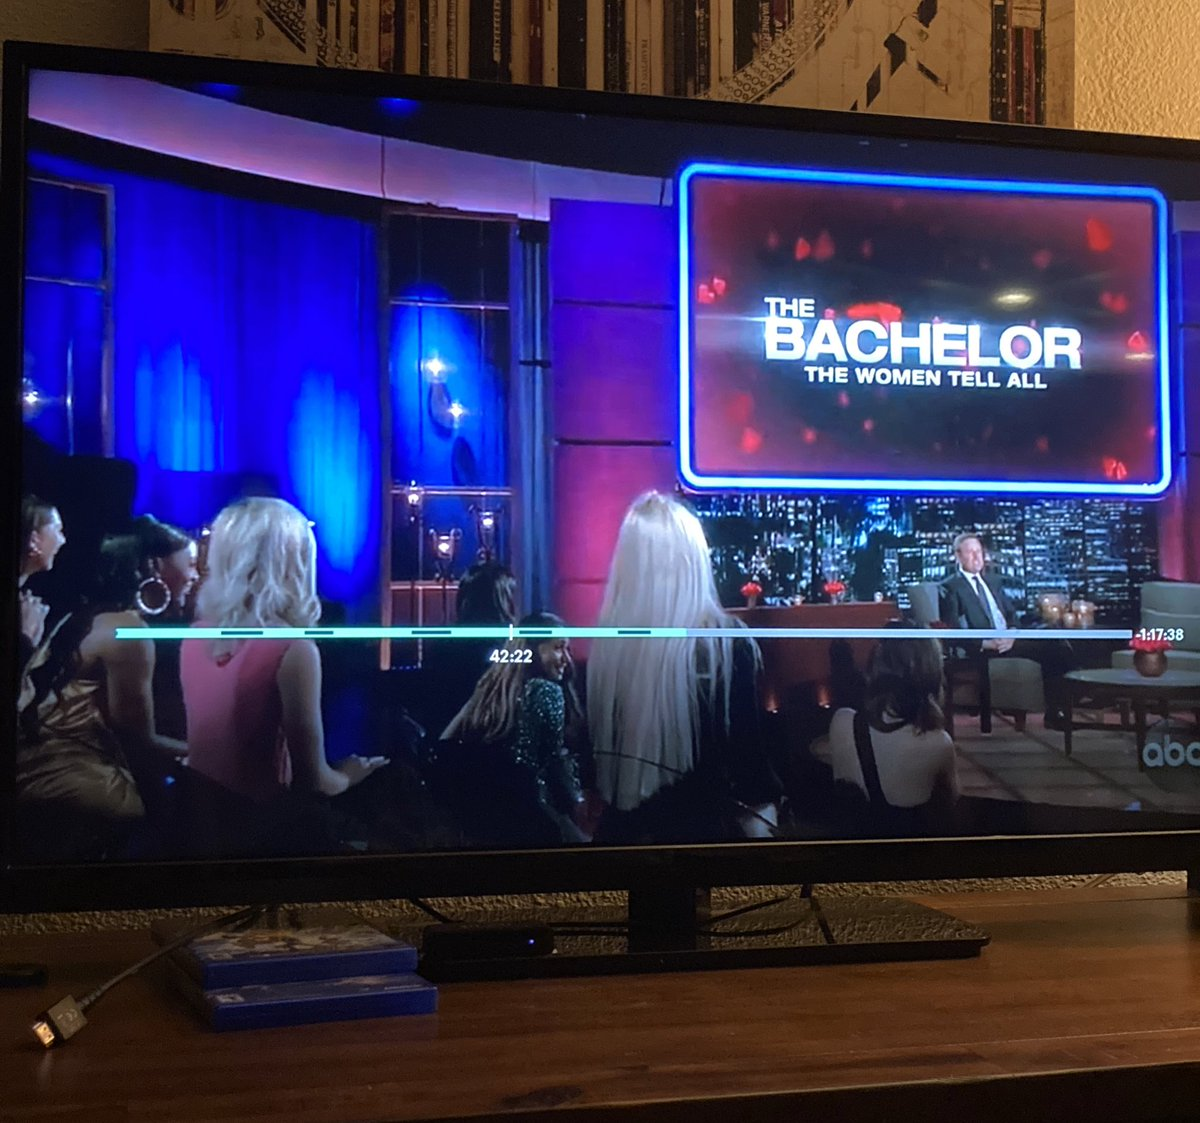 WAIT. That's the back of Heather's head LMAO...I didn't even realize she was there #TheBachelorABC #WomenTellAll